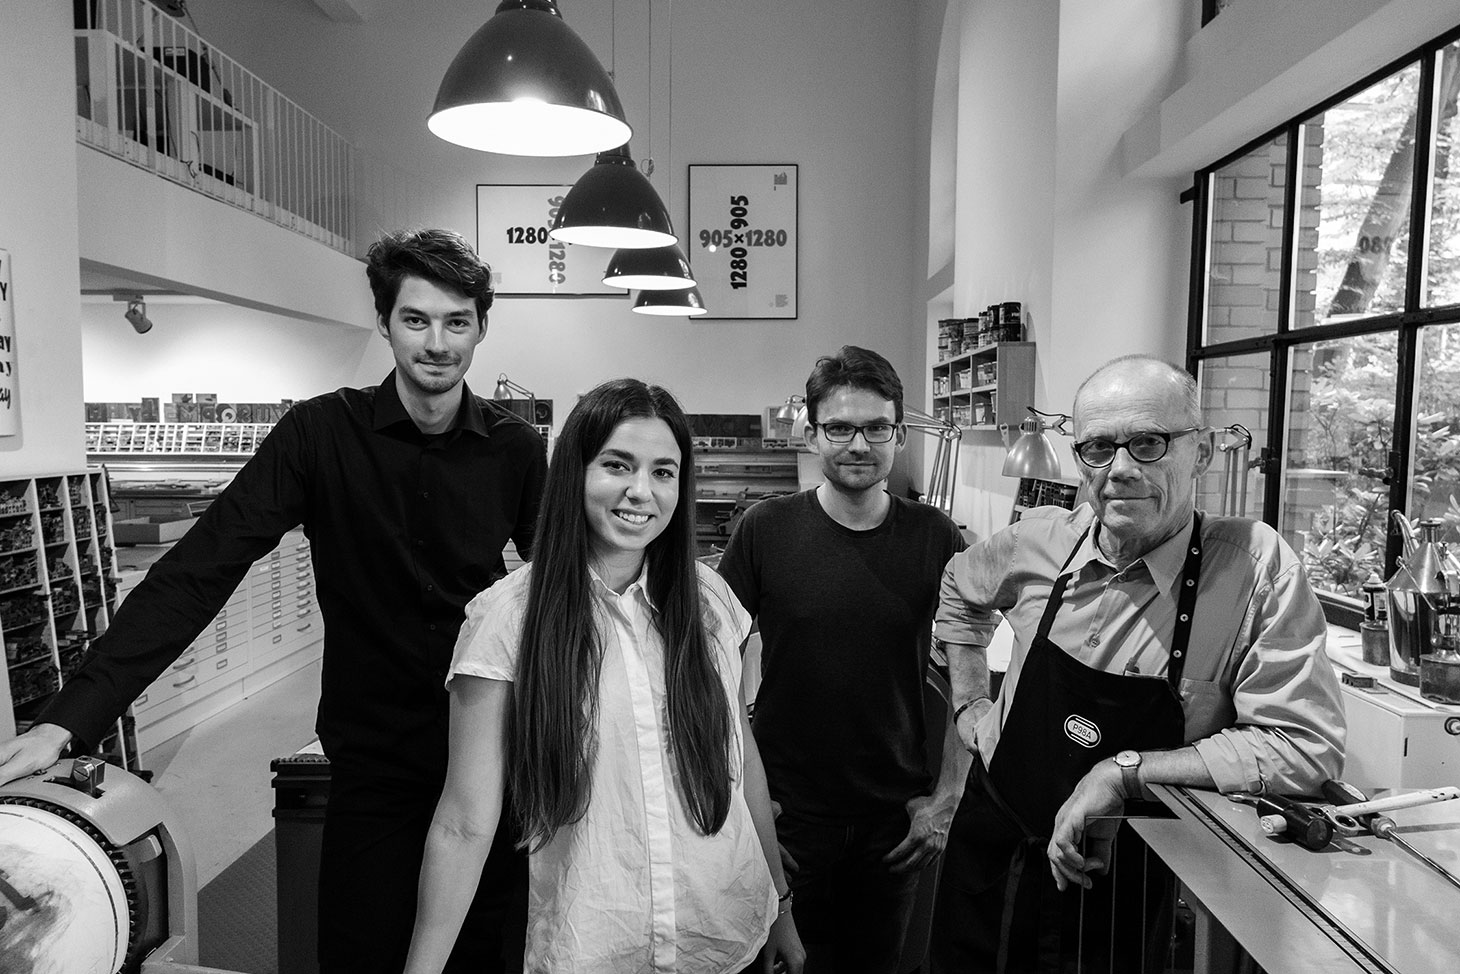 Pictured from left (Ferdinand Ulrich, Meryl Vedros, Norman Posselt, and Erik Spiekermann), photographed by Norman Posselt.